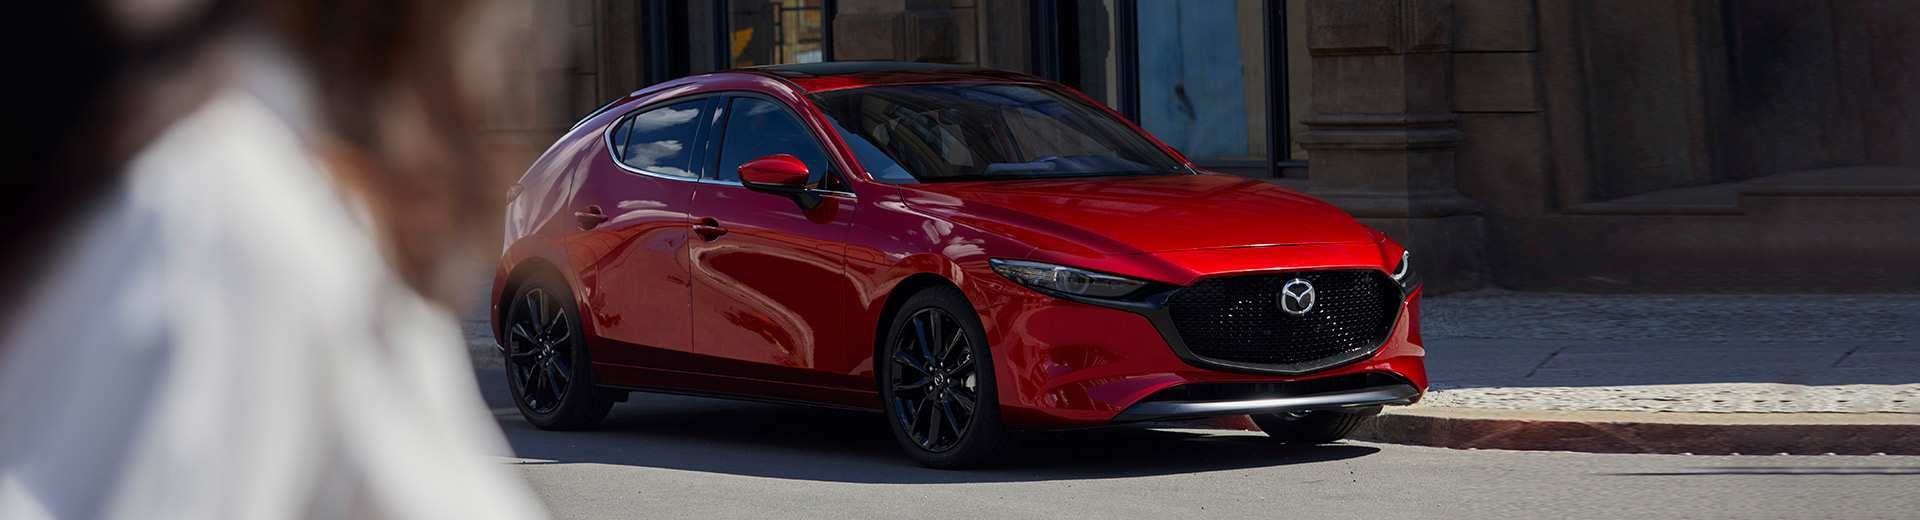 68 New Mazda 3 Grand Touring 2020 Review